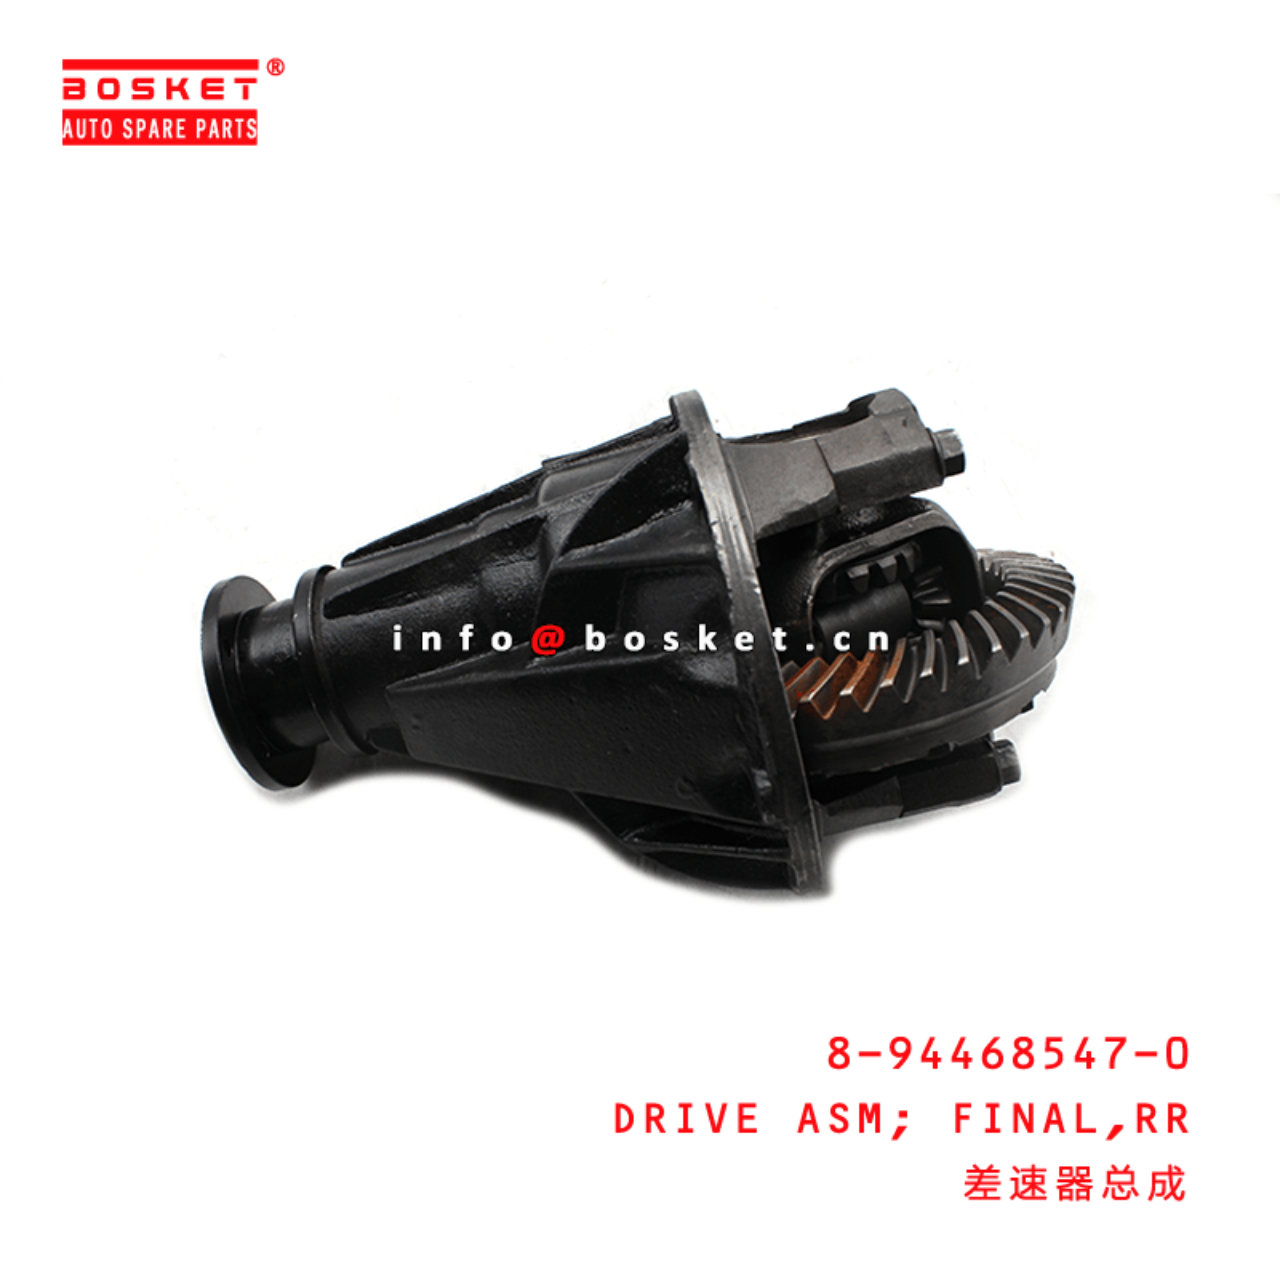 8-94468547-0 Rear Final Drive Assembly 8944685470 Suitable for ISUZU TFR54 4JA1